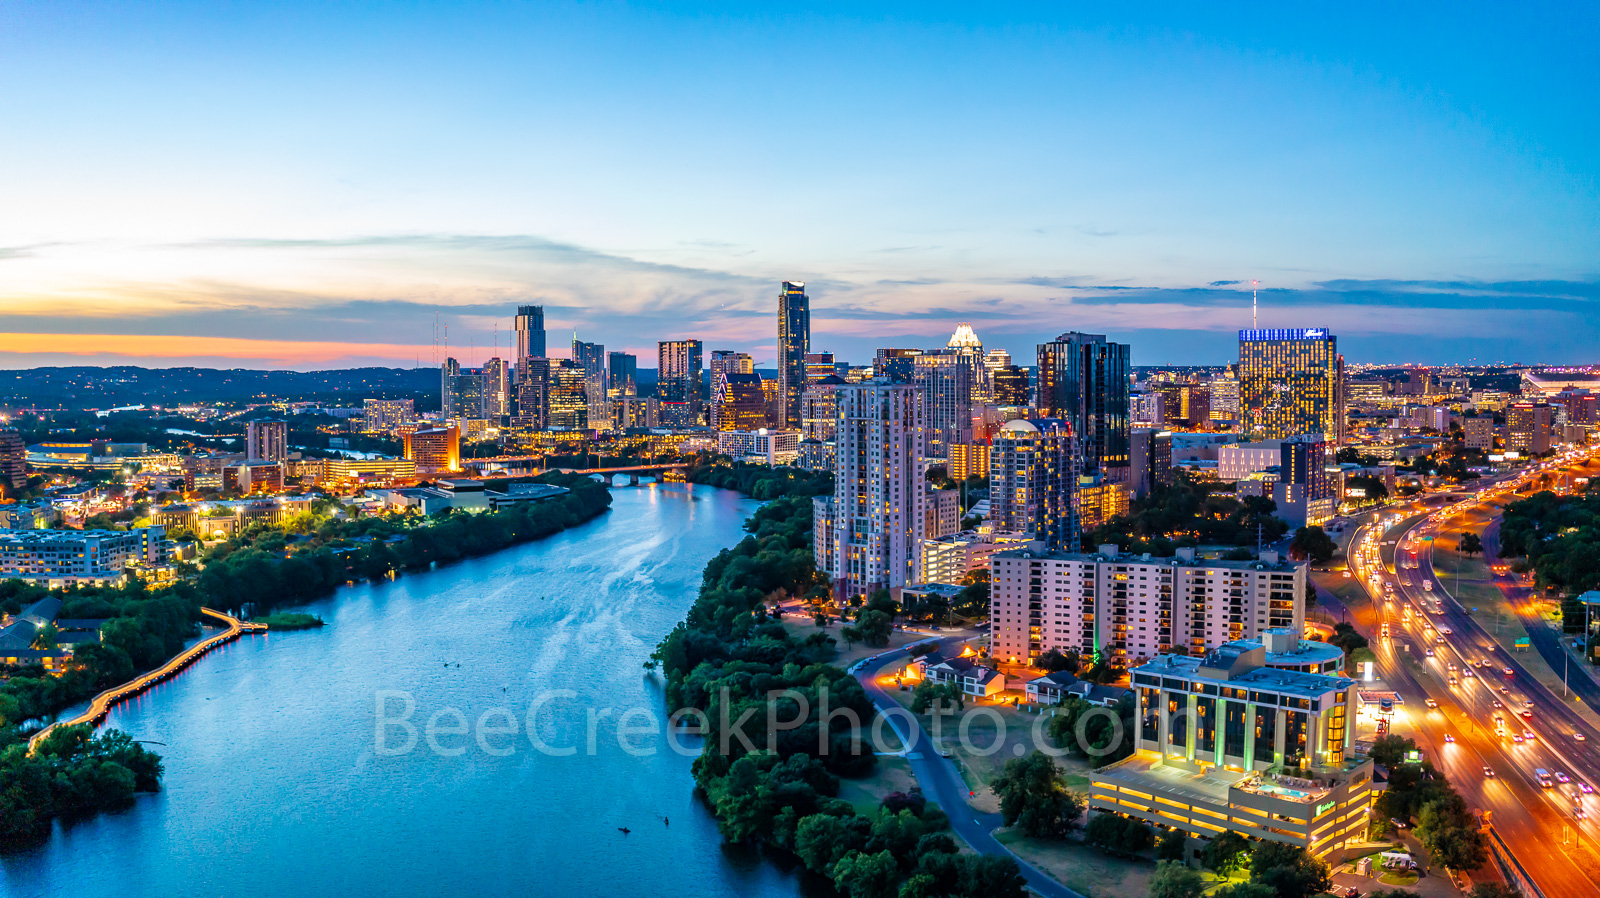 Austin skyline pictures, Austin Aerial Skyline Twilight View, Austin skyline, aerial, drone, Austin, night, twilight, dark, Lady Bird Lake, high rise buildings, architecture, boardwalk lights, shoreli, photo